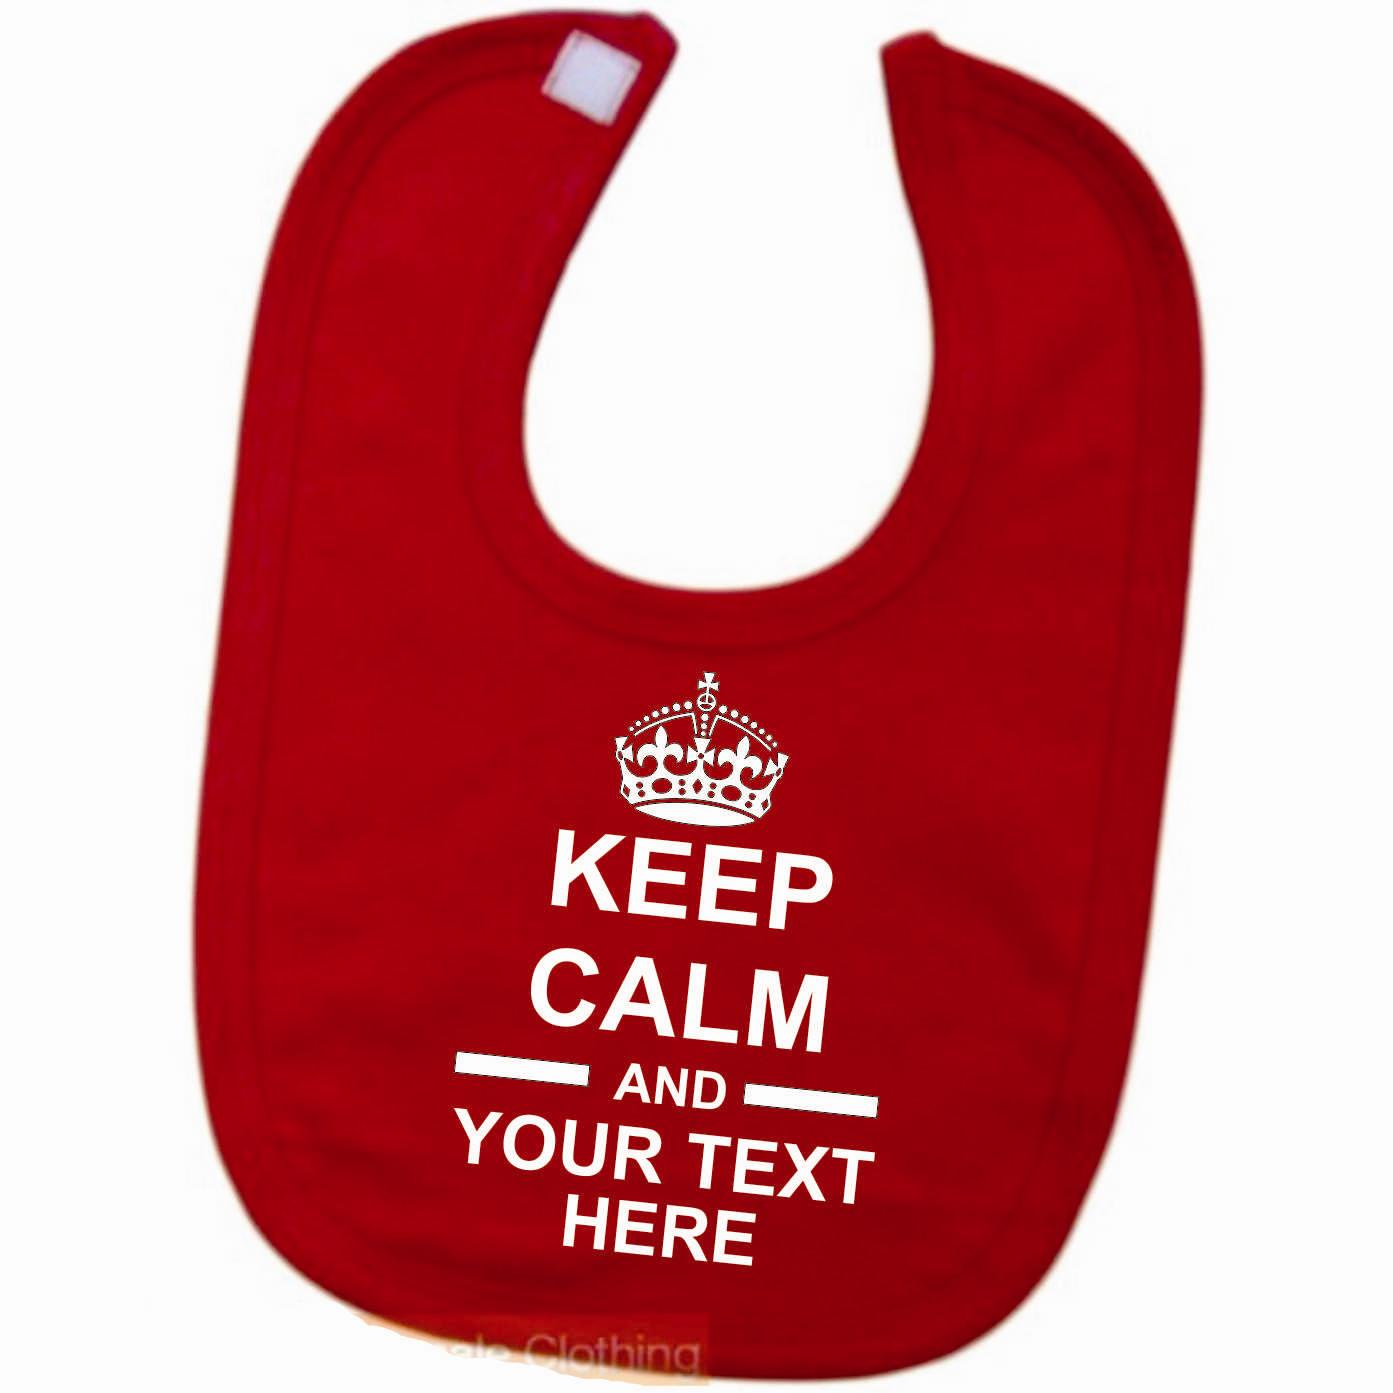 Keep-Calm-Your-Text-Personalised-Baby-Bib-Dribble-Catcher